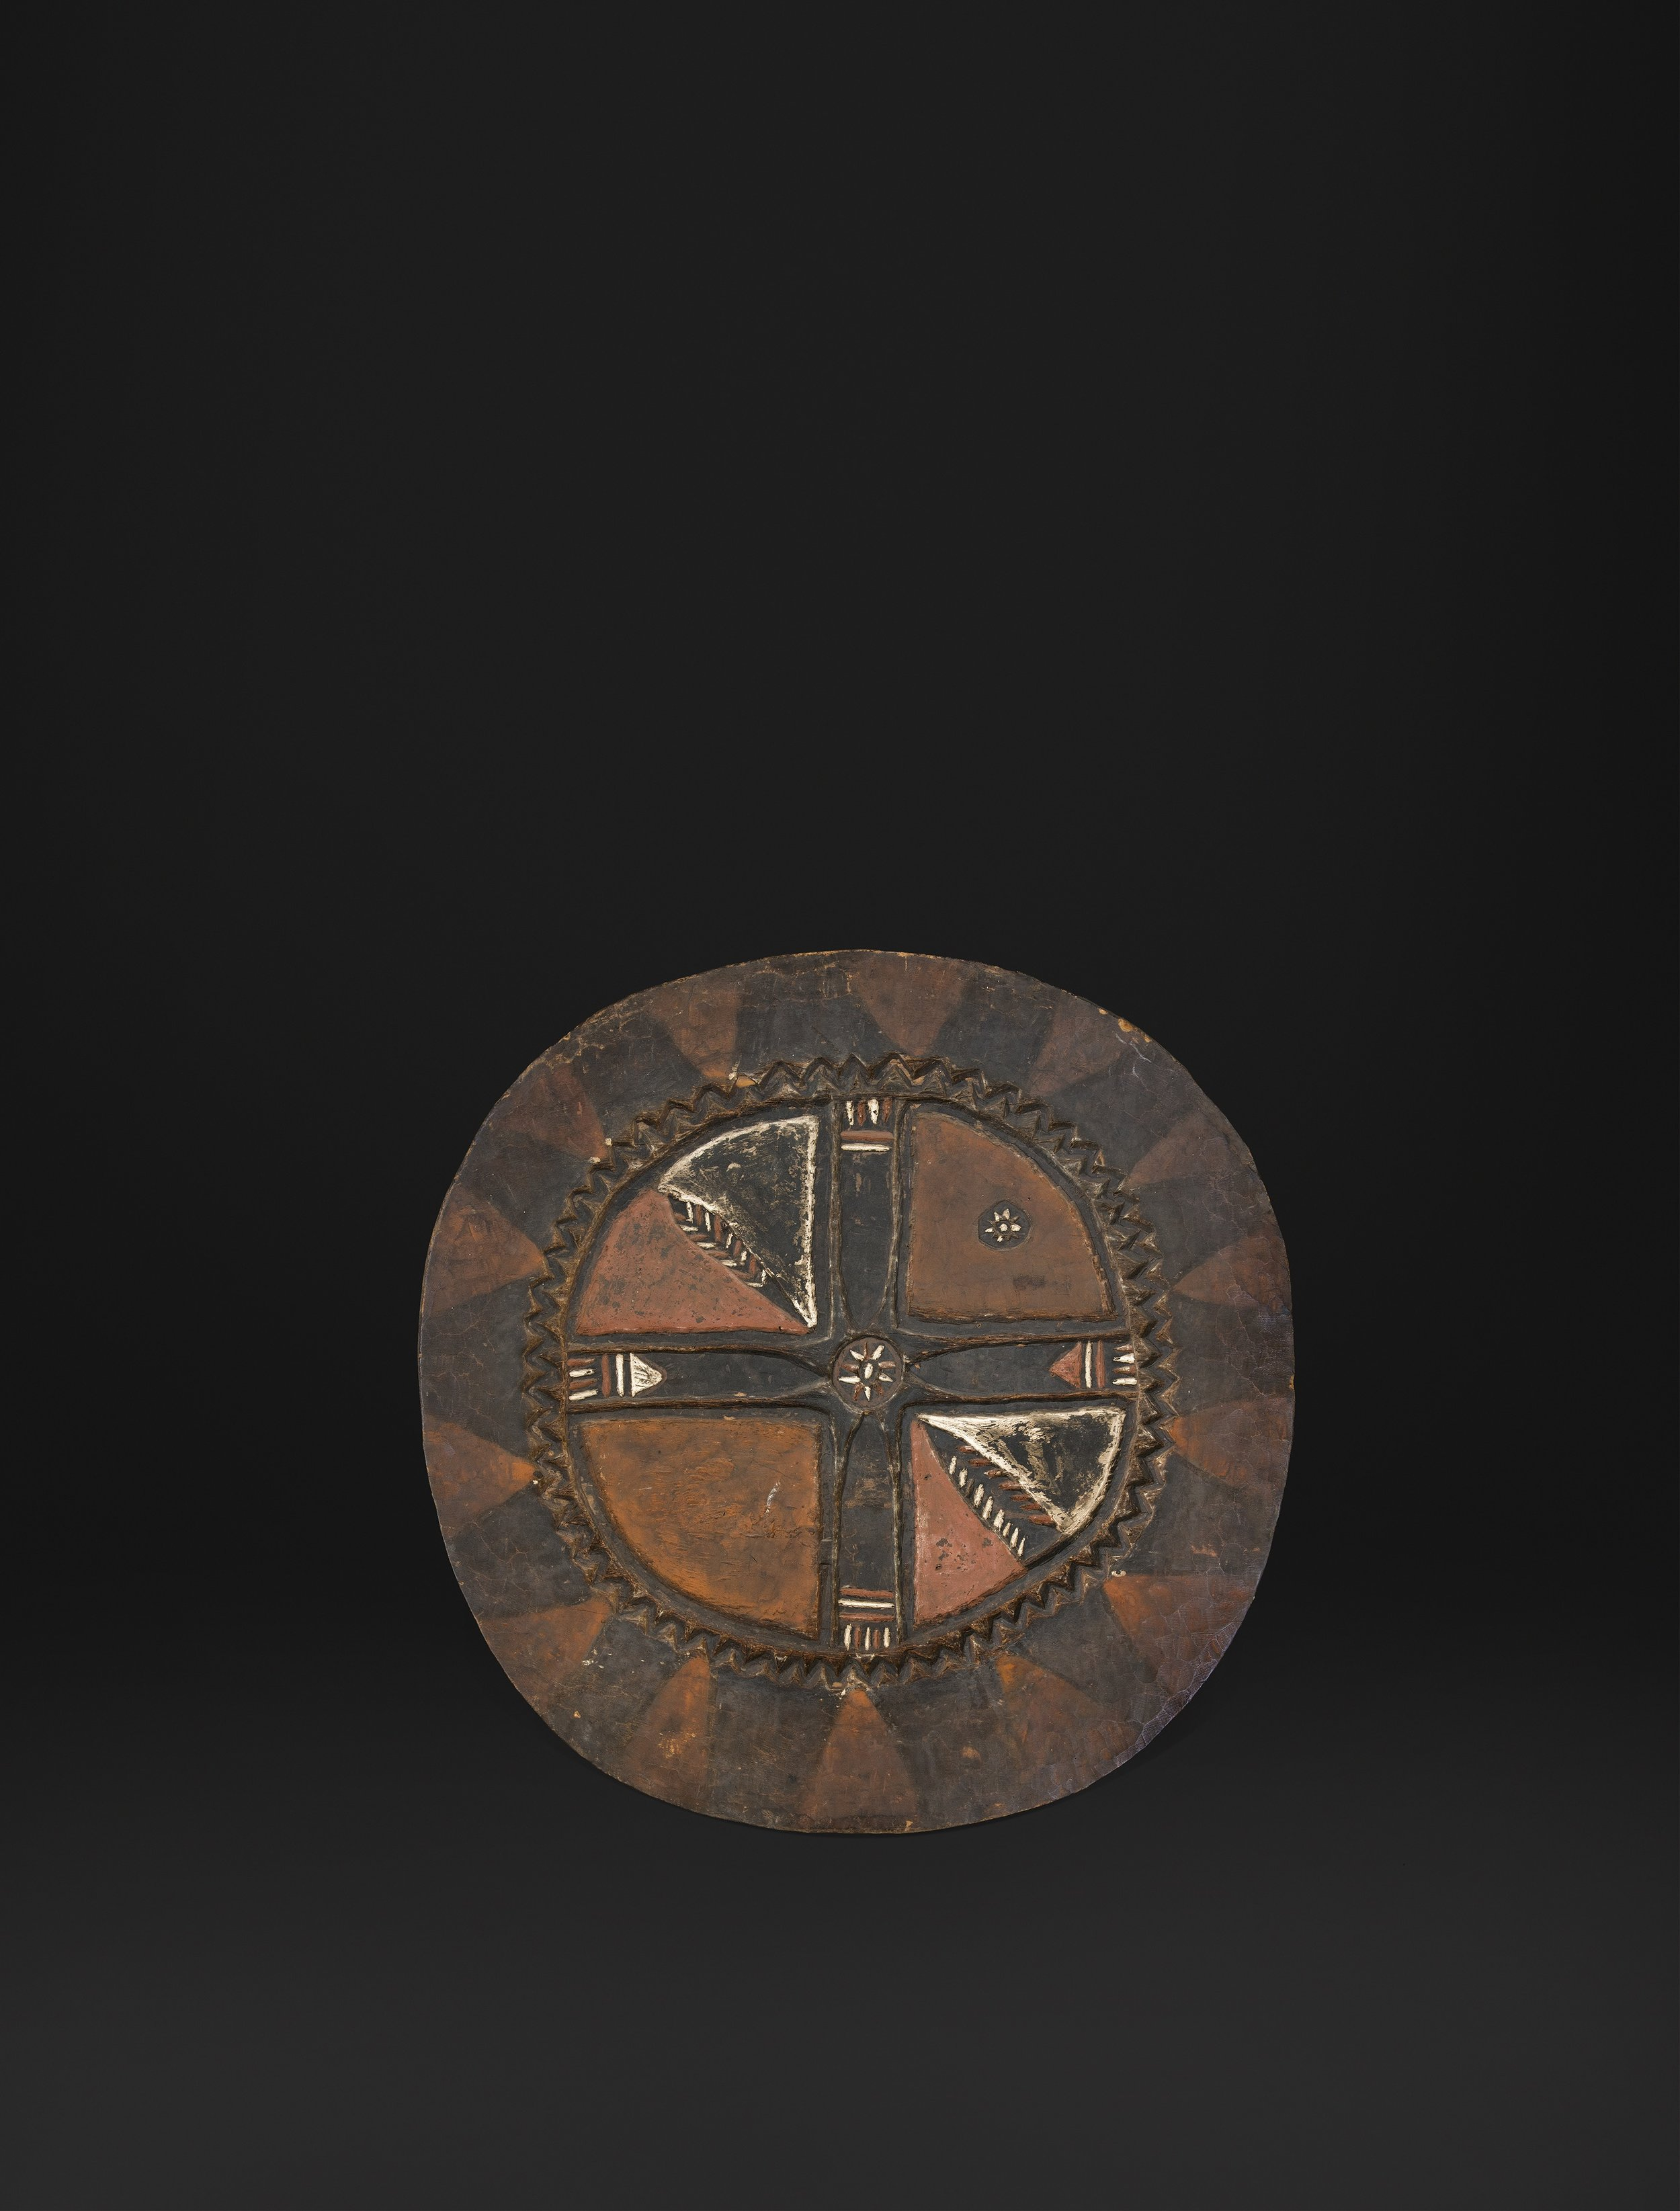 Astrolabe Bay, North Coast, New Guinea, 19th century, No. A.7415, South Australian Museum, Adelaide.. Image courtesy of Bill Evans